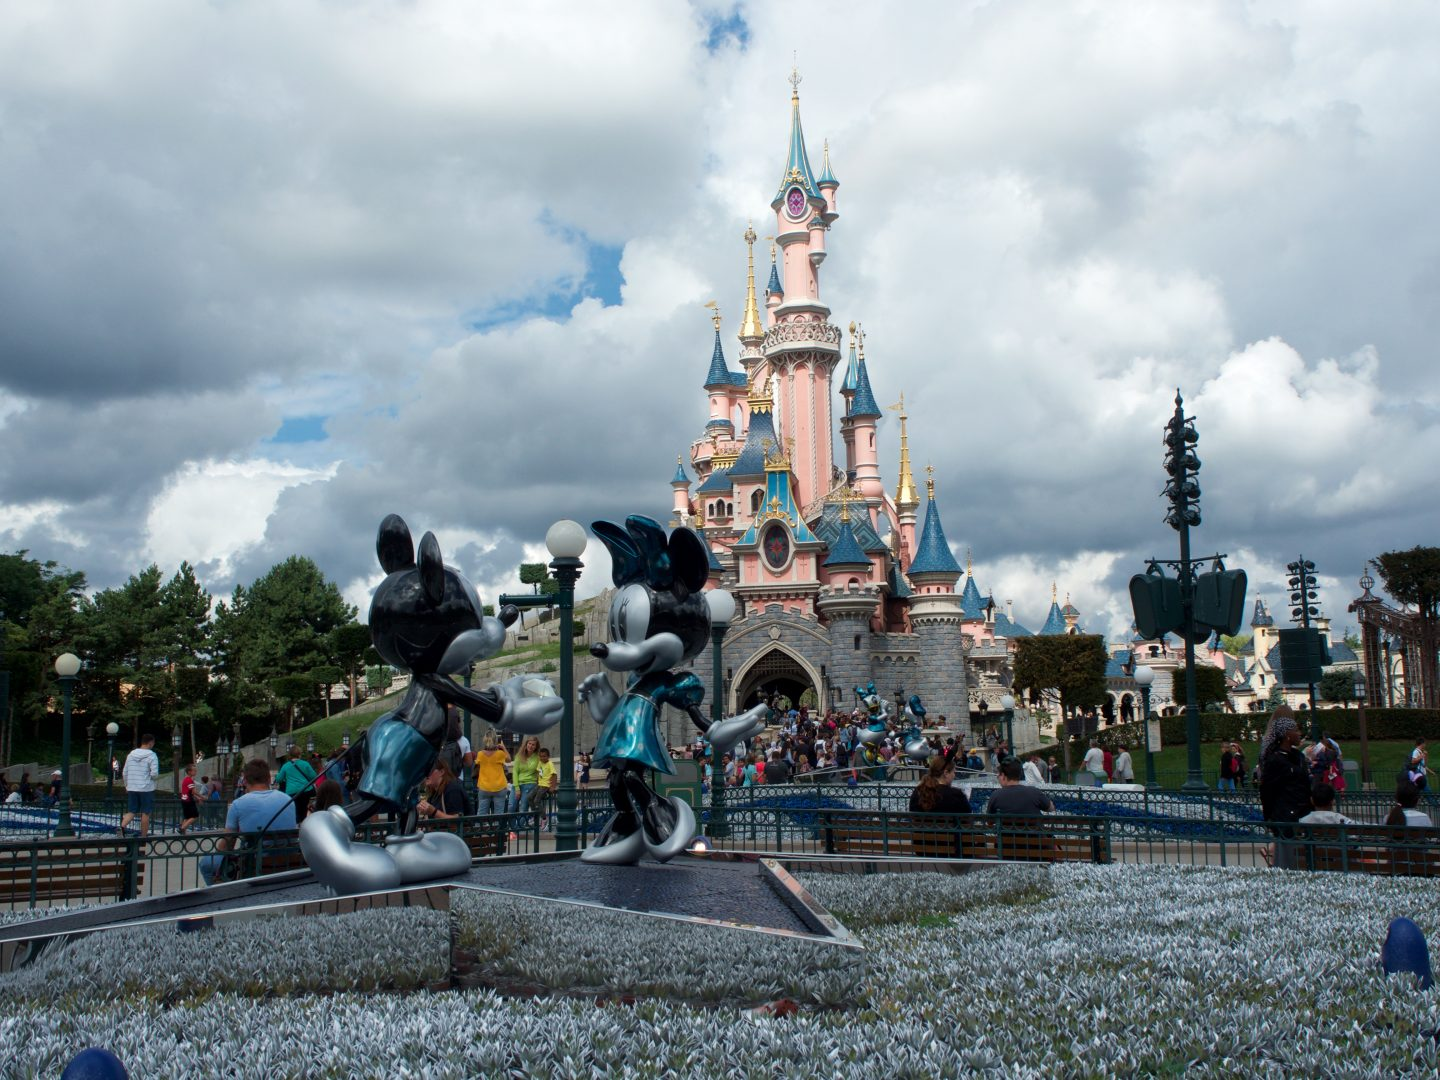 25th Anniversary of Disneyland Paris